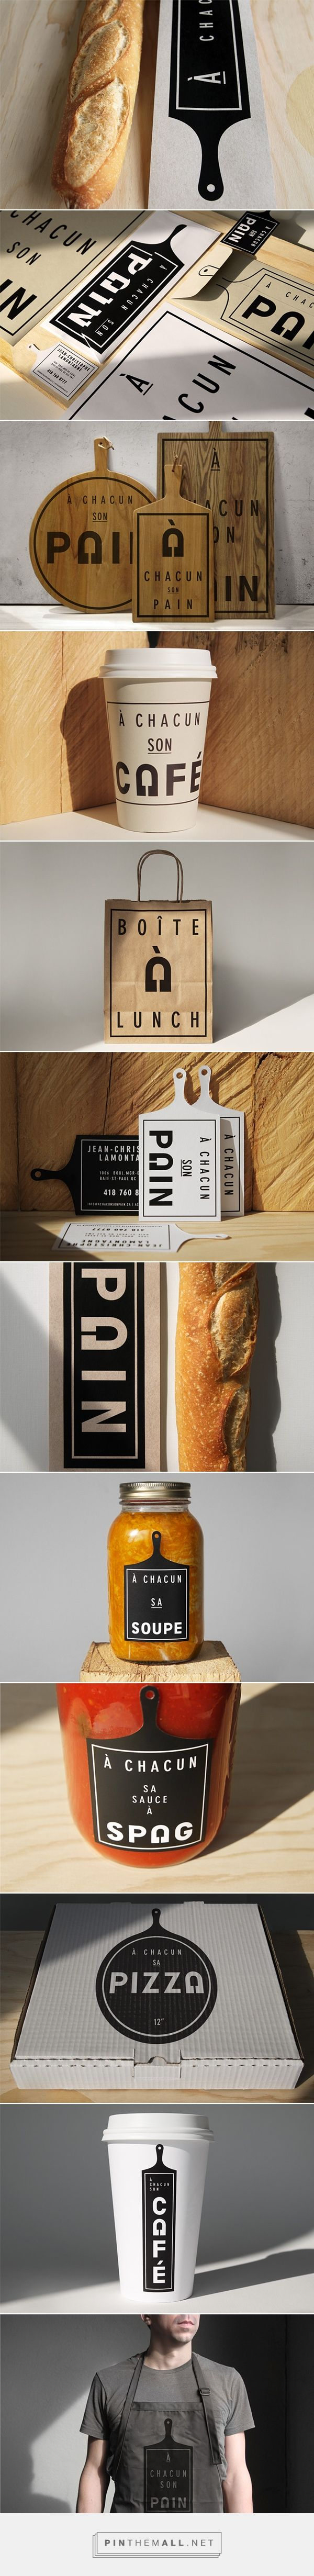 À chacun son pain by Paprika on Behance curated by Packaging Diva PD simple and compelling #packaging created via https://www.behance.net/gallery/21936941/A-chacun-son-pain-Branding